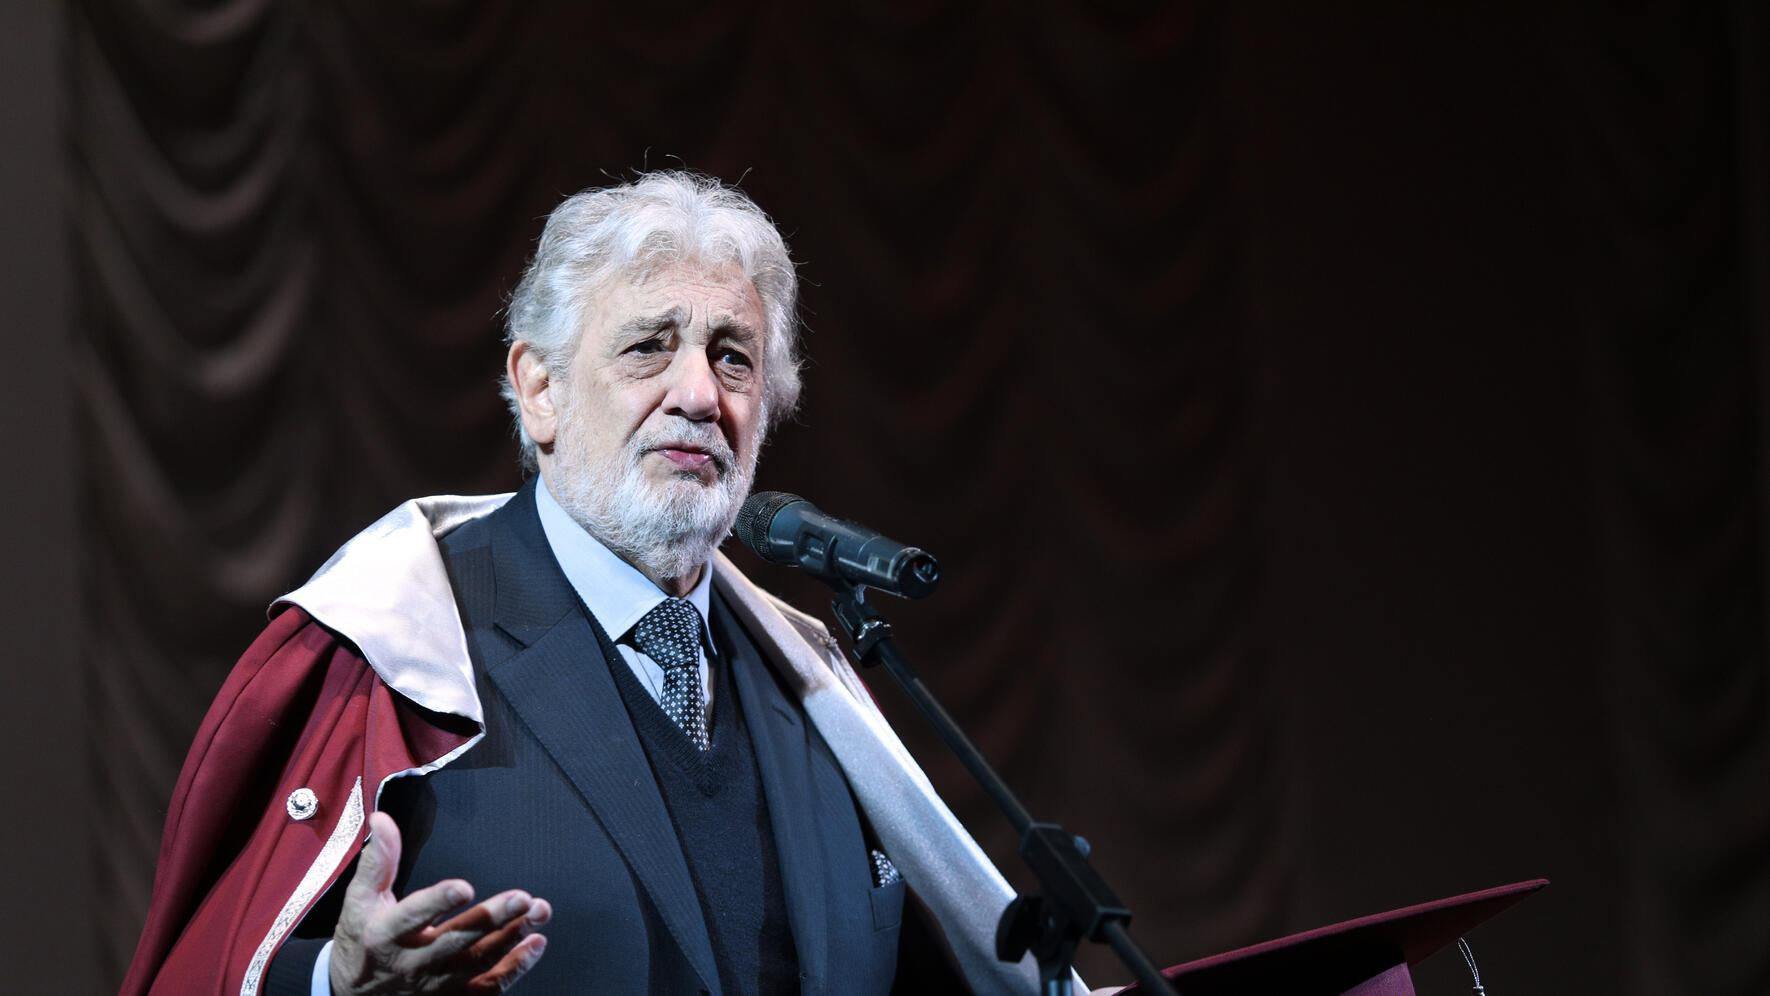 Spanish opera singer Placido Domingo delivers a speech after he accepted the Honorary Professor title at the Pyotr Tchaikovsky National Music Academy of Ukraine (NMAU) in Kyiv, capital of Ukraine, February 14, 2019. Ukrinform. (Photo credit should read Danil Shamkin / Barcroft Media via Getty Images)